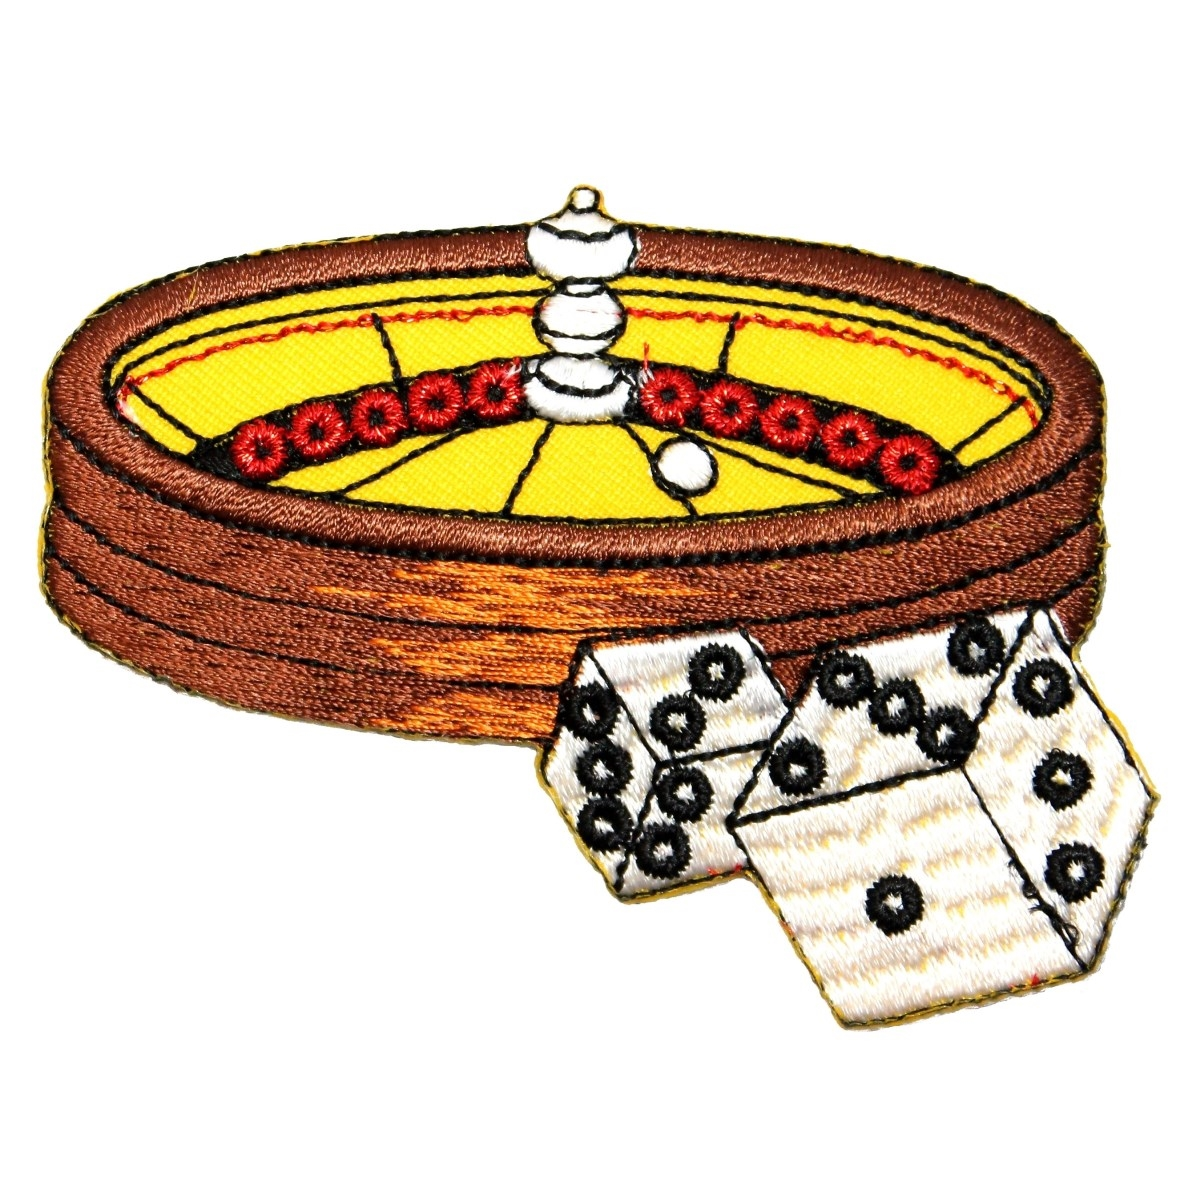 online casino roulette dice roll online